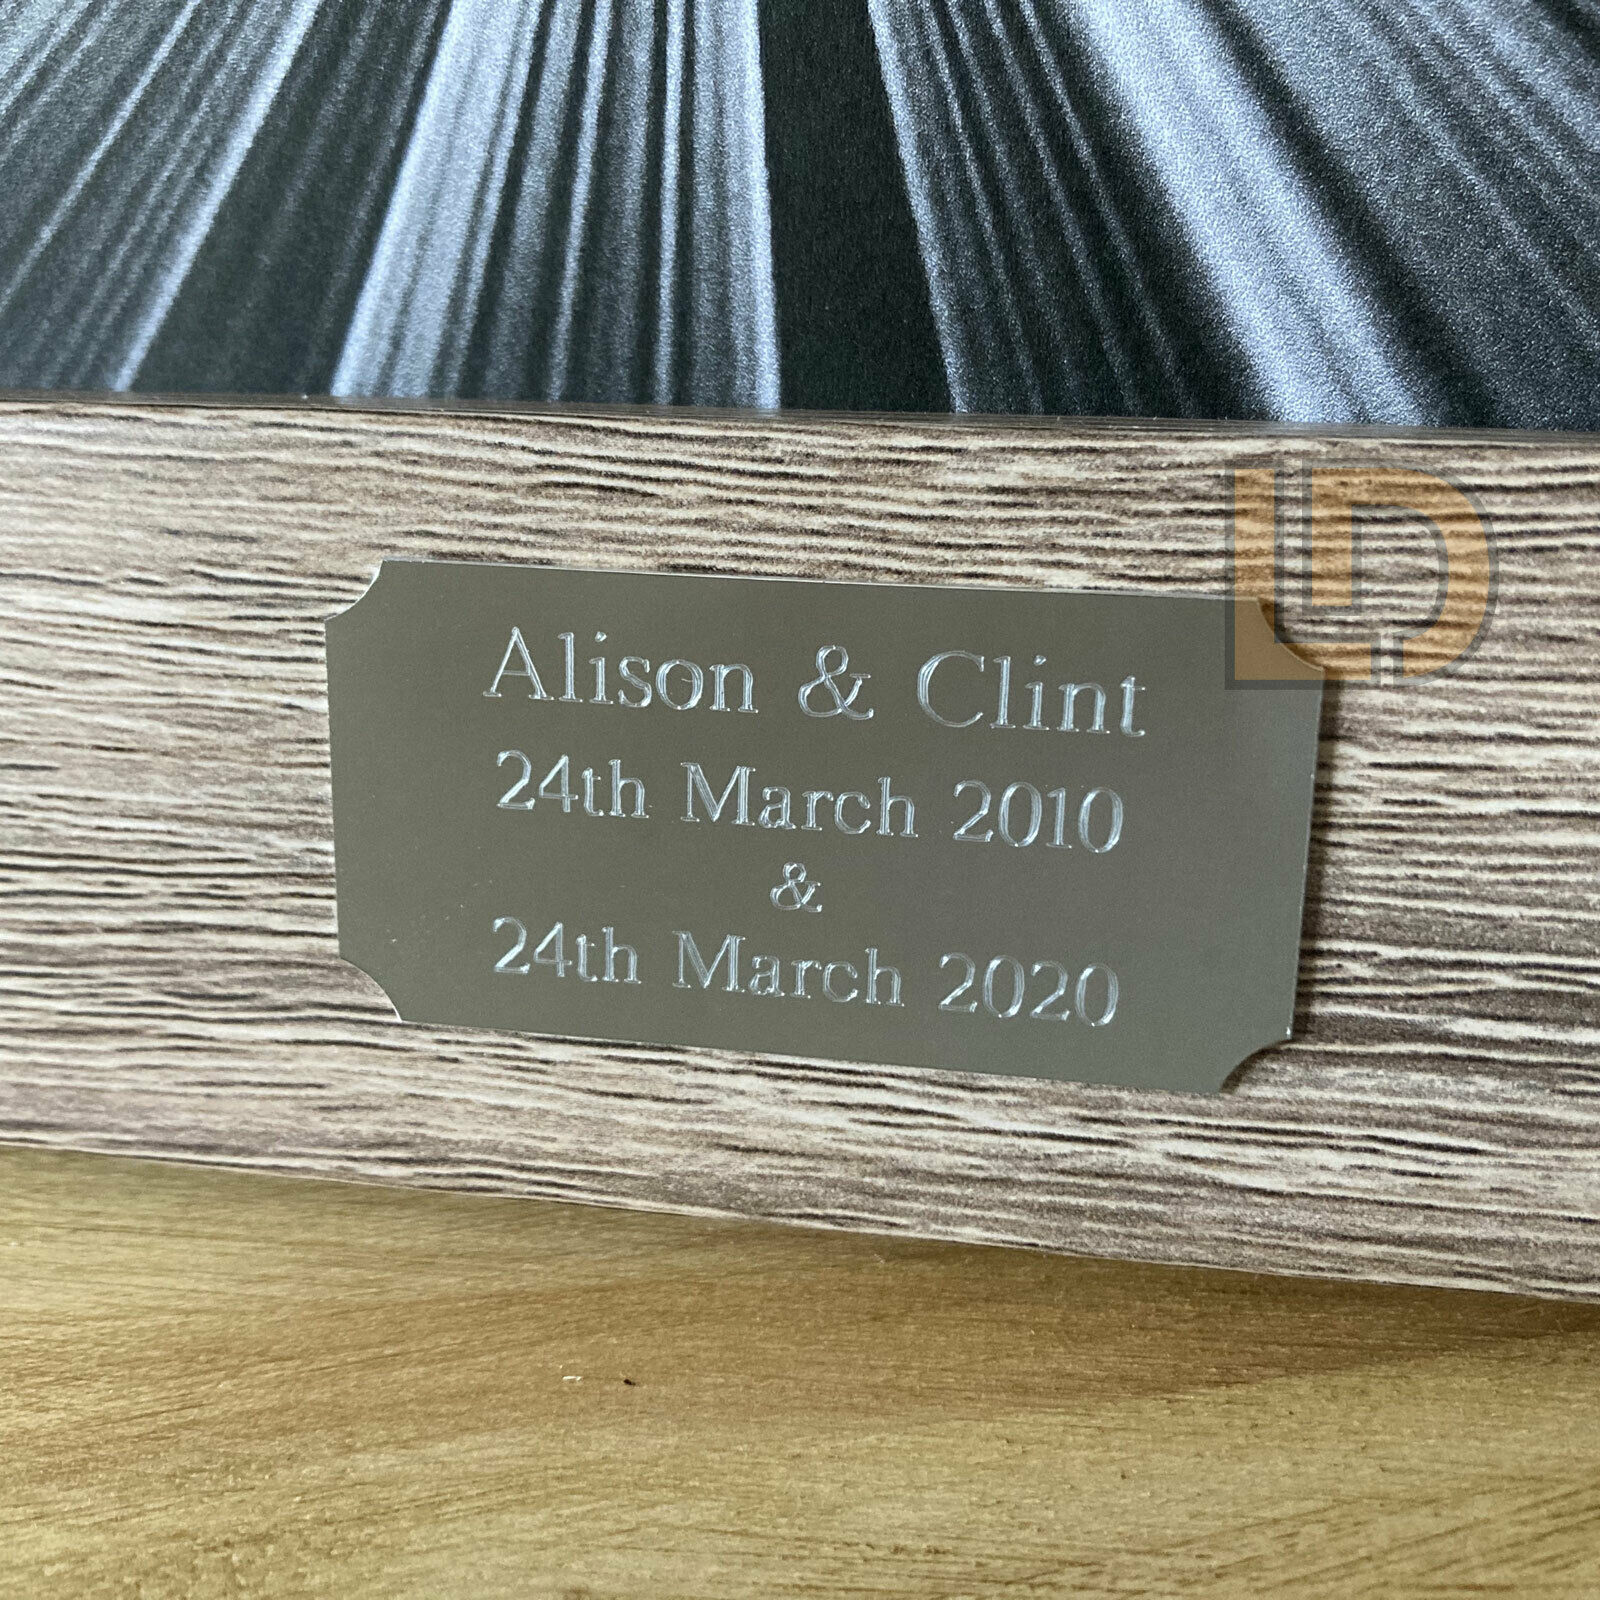 engraved trophy plaques plates silver 50 x 25mm self adhesive trophy plaque picclick uk. Black Bedroom Furniture Sets. Home Design Ideas